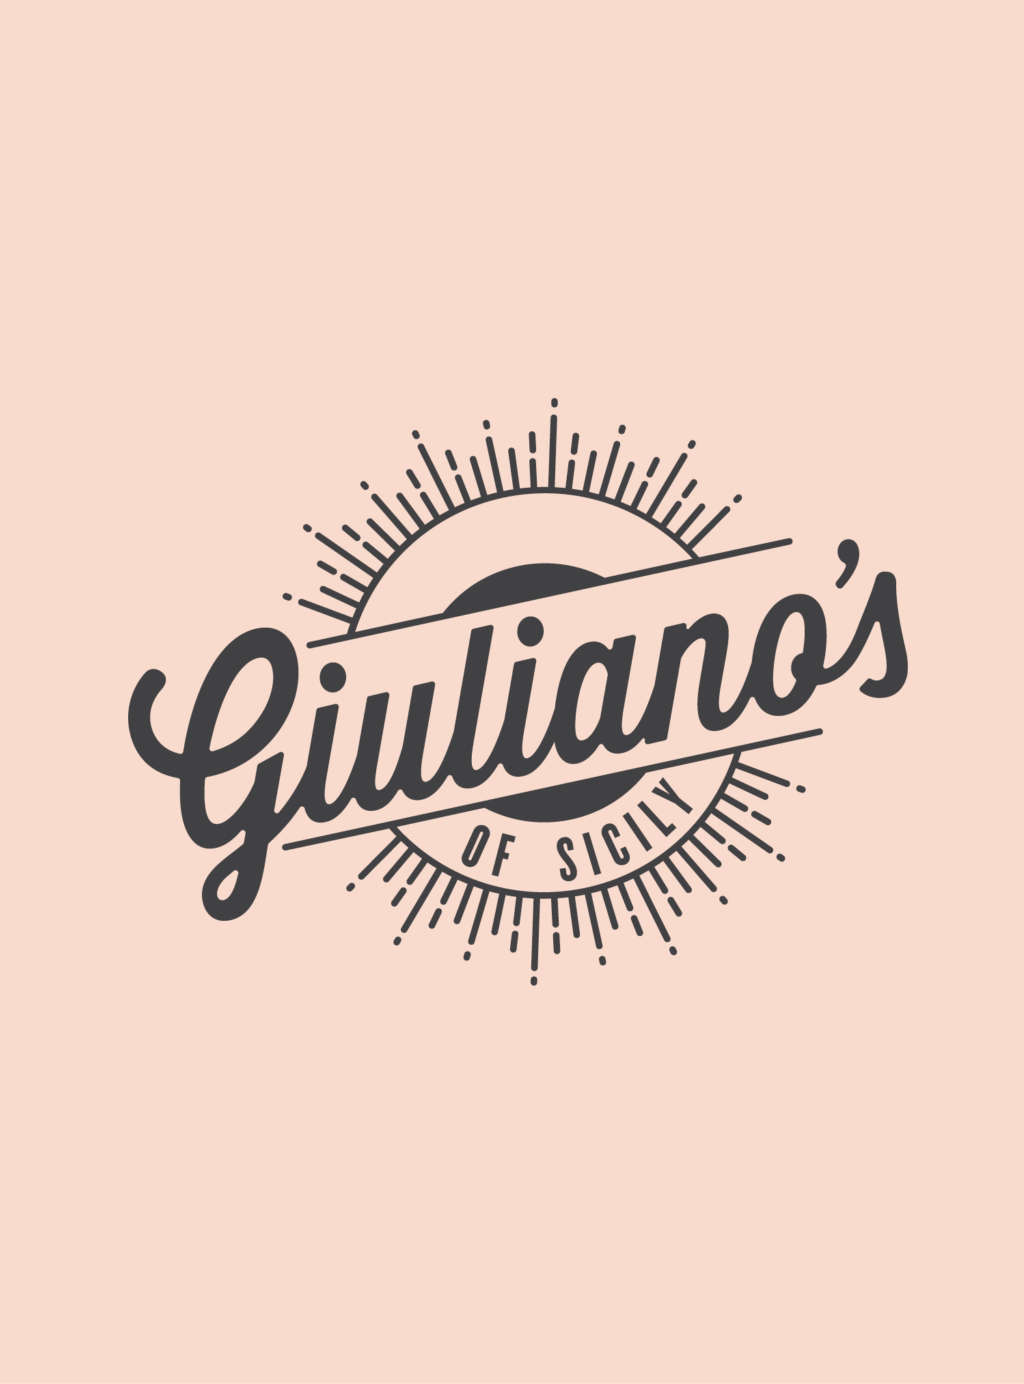 Giulianos-logo-update